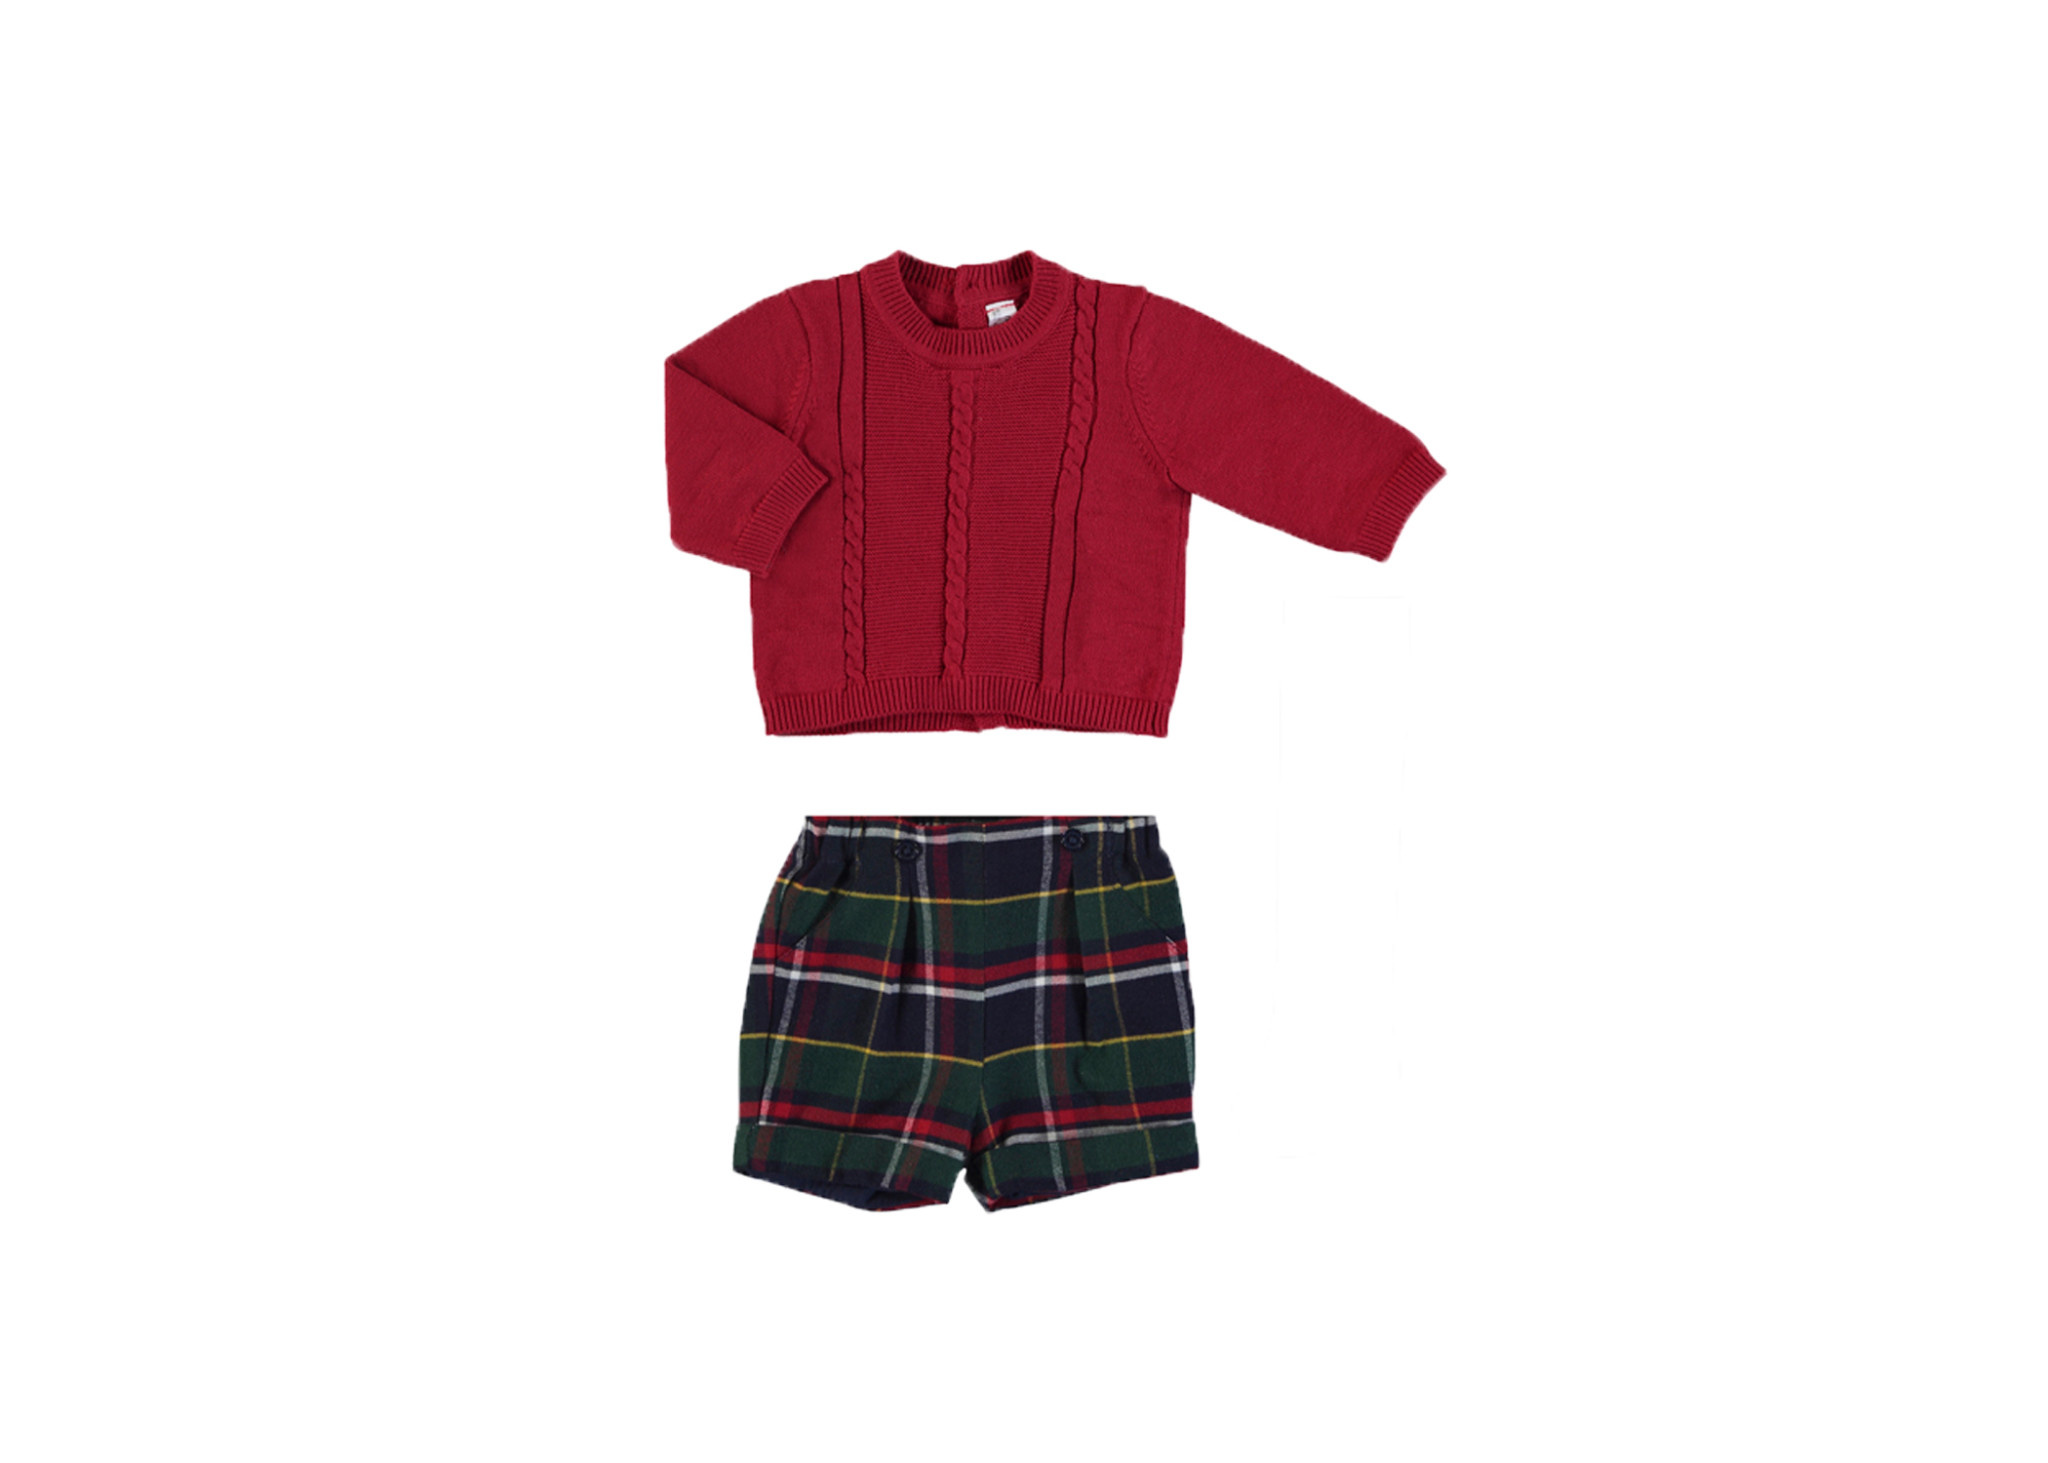 Mayoral Plaid/Red Sweater Set